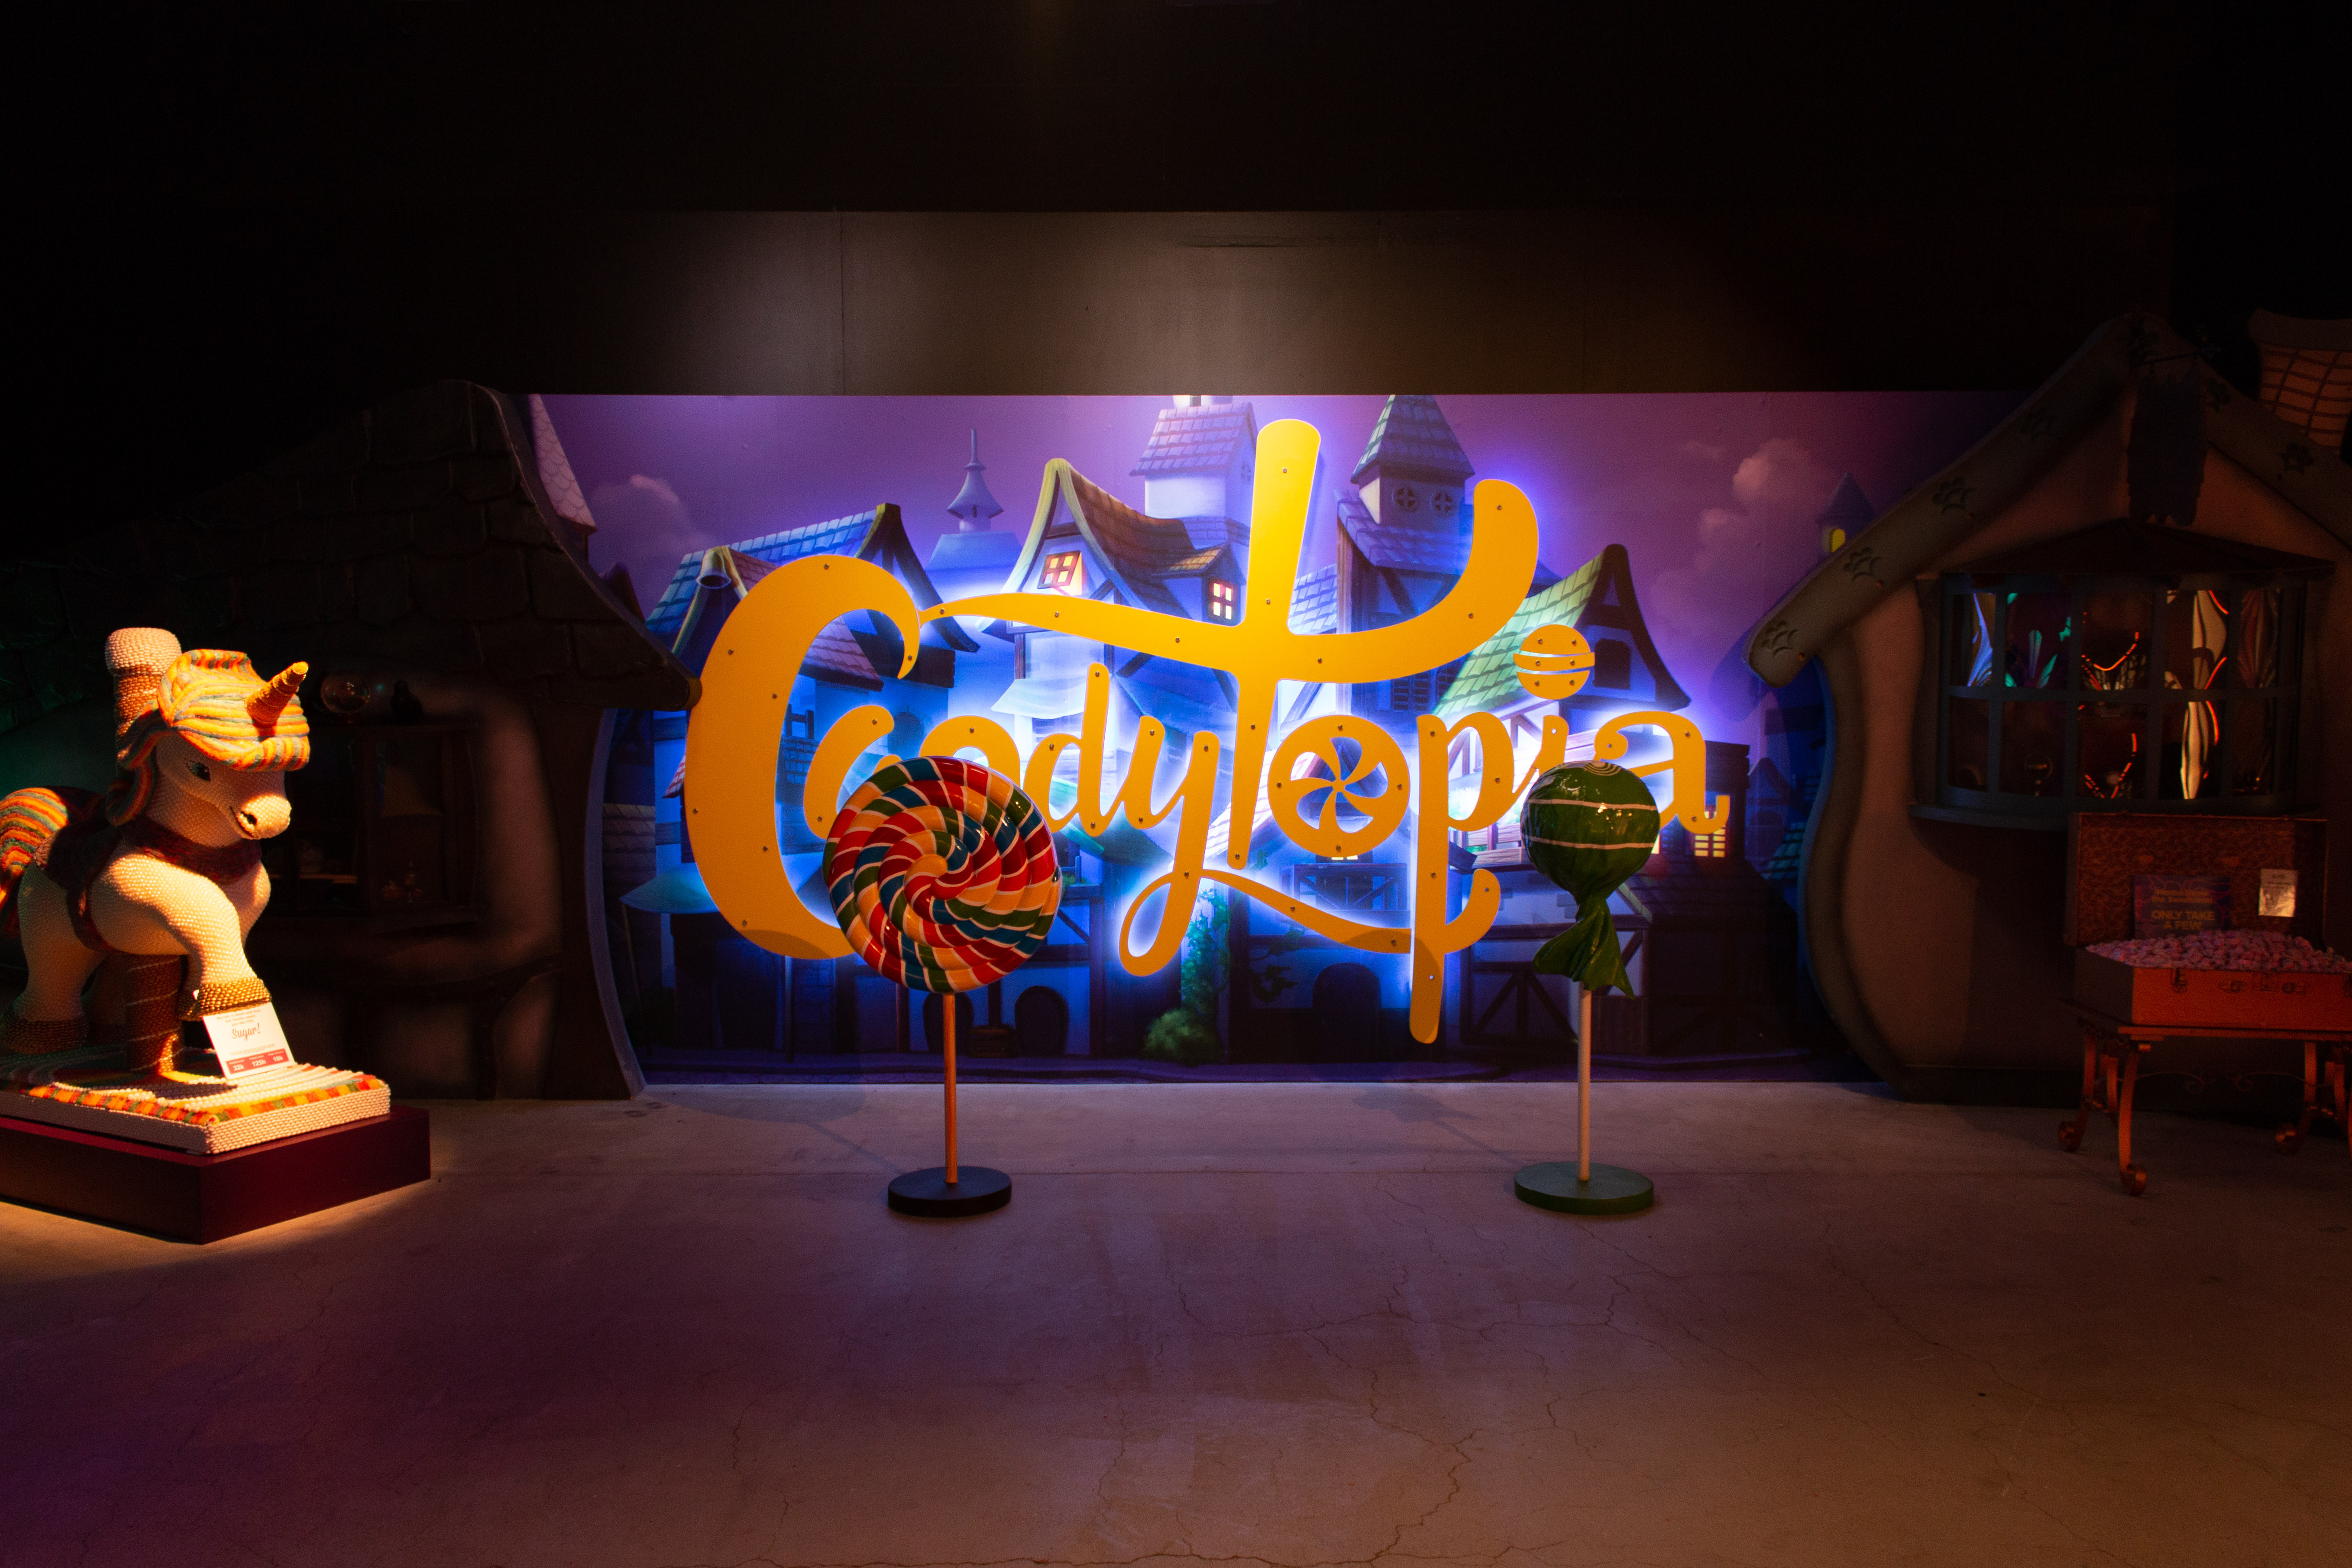 Inside the Mall of America's New Candytopia Exhibit